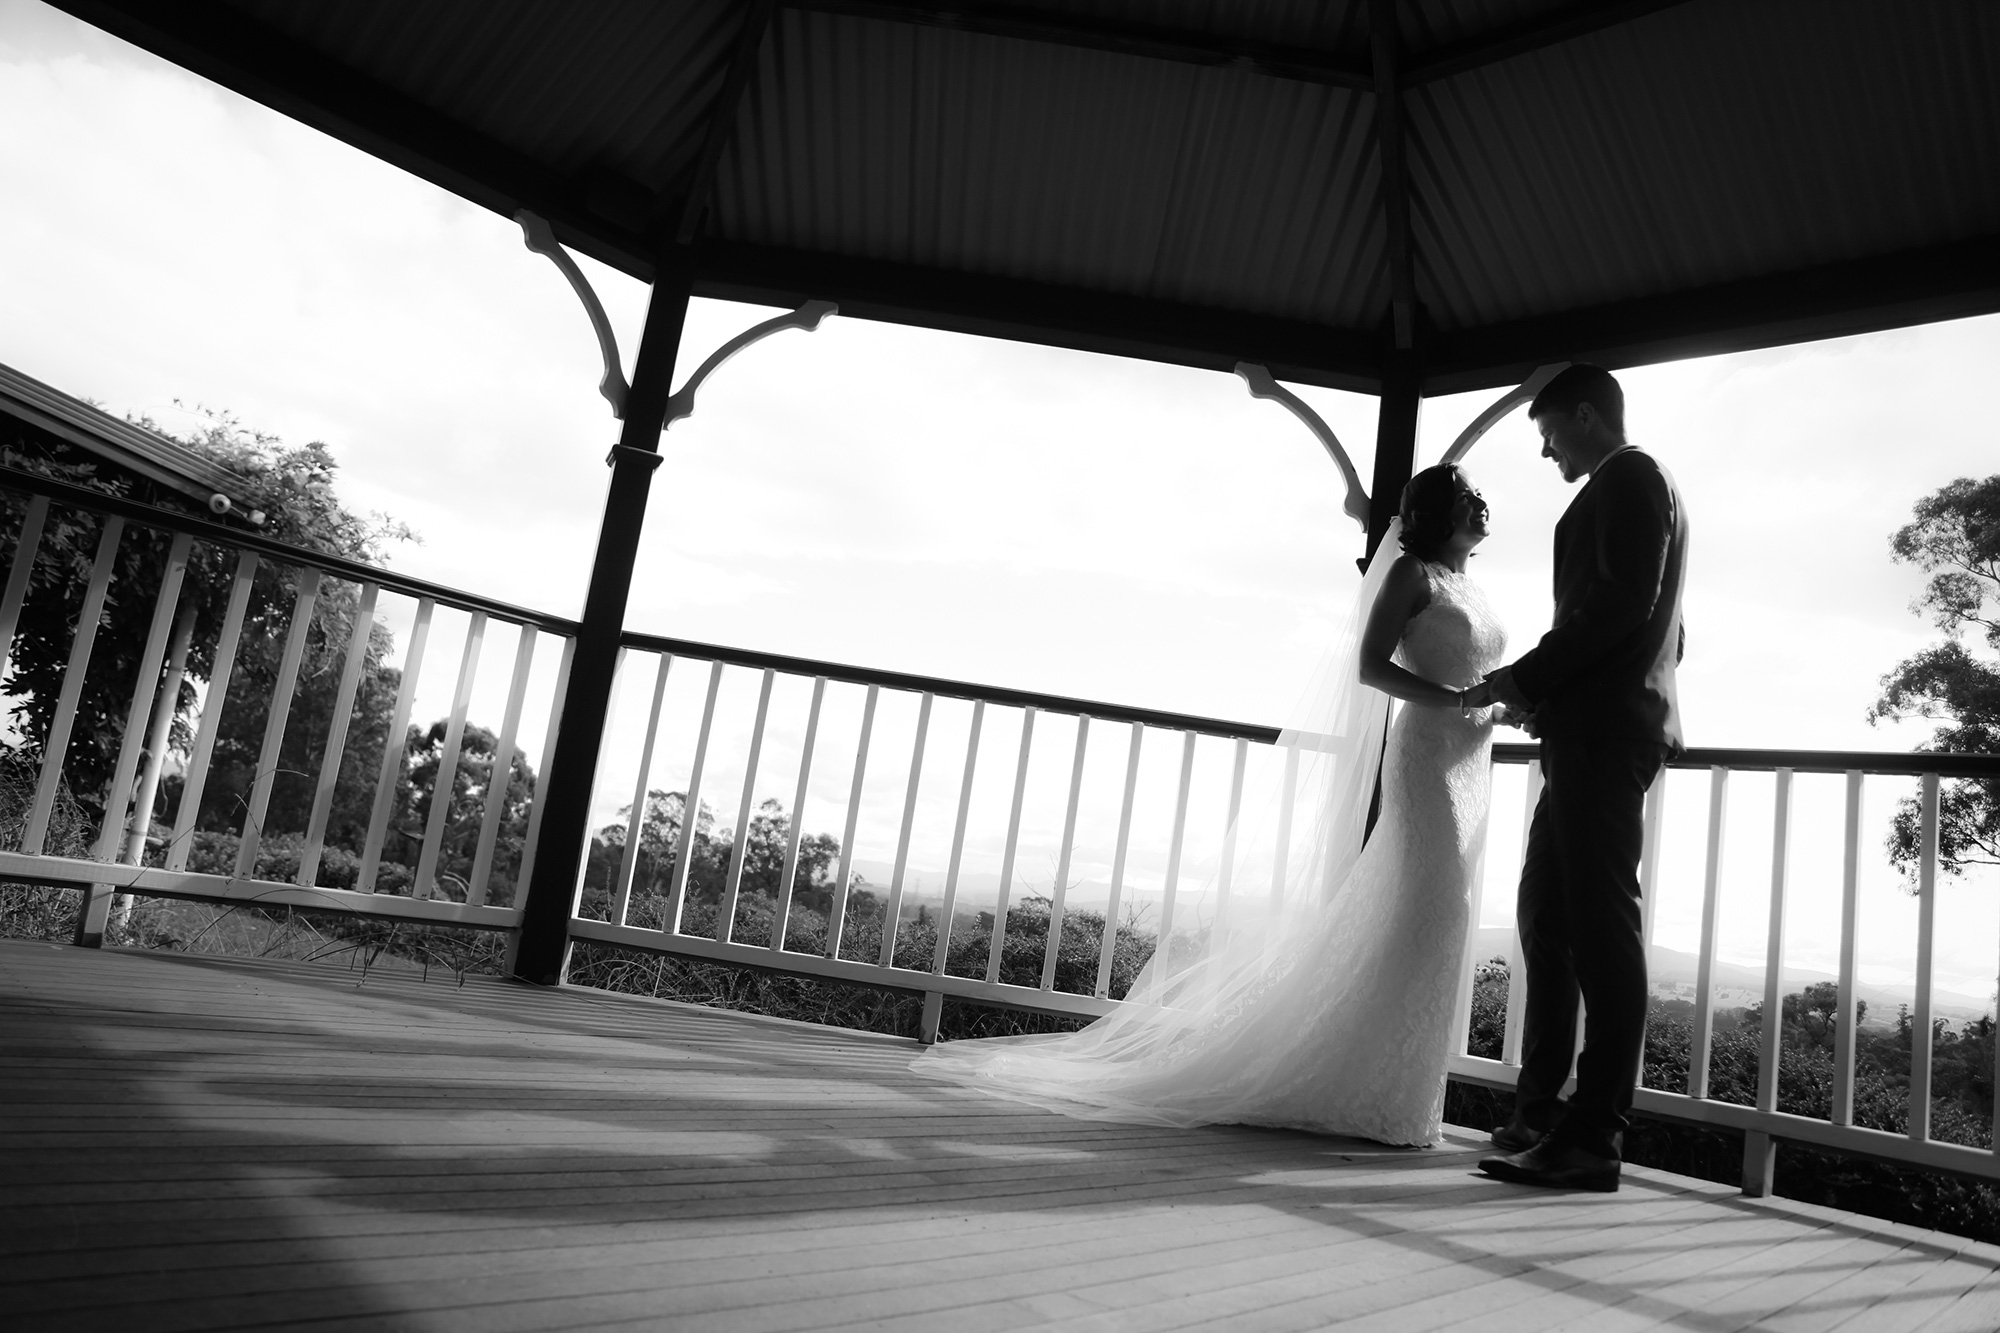 Wedding-Gazebo.jpg